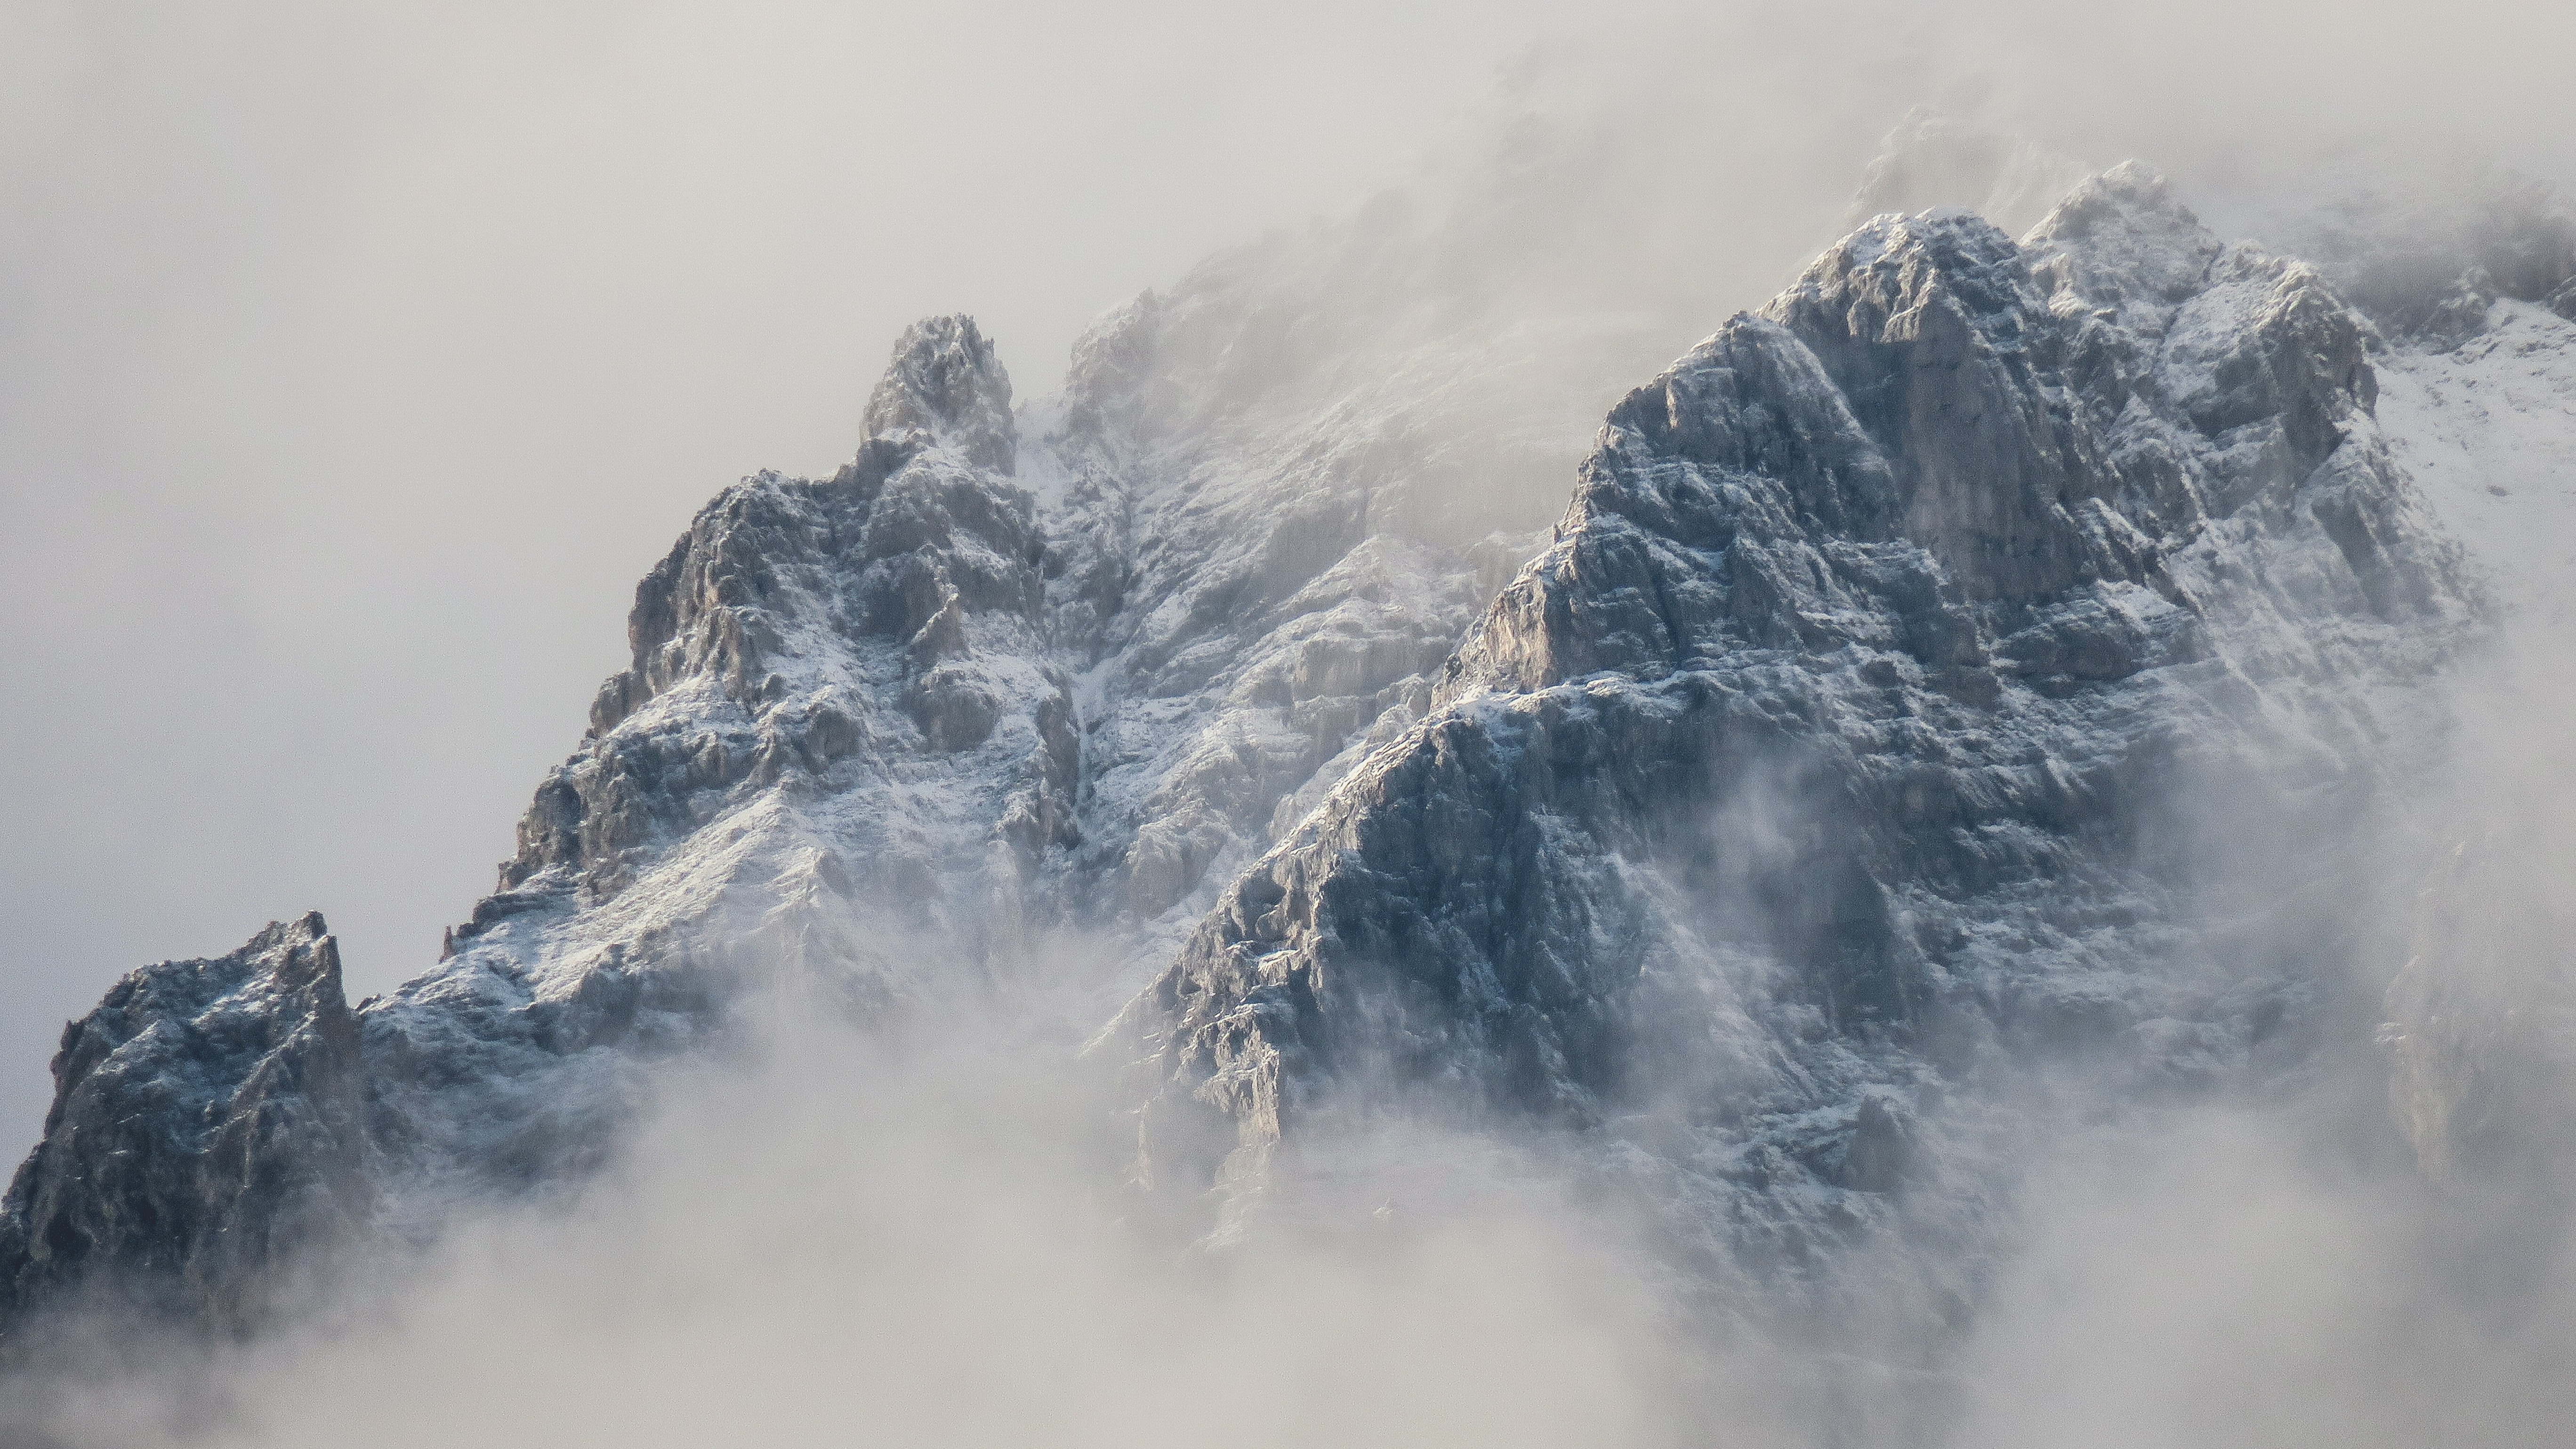 Misty alps and snowy mountains on a foggy day in Innsbruck